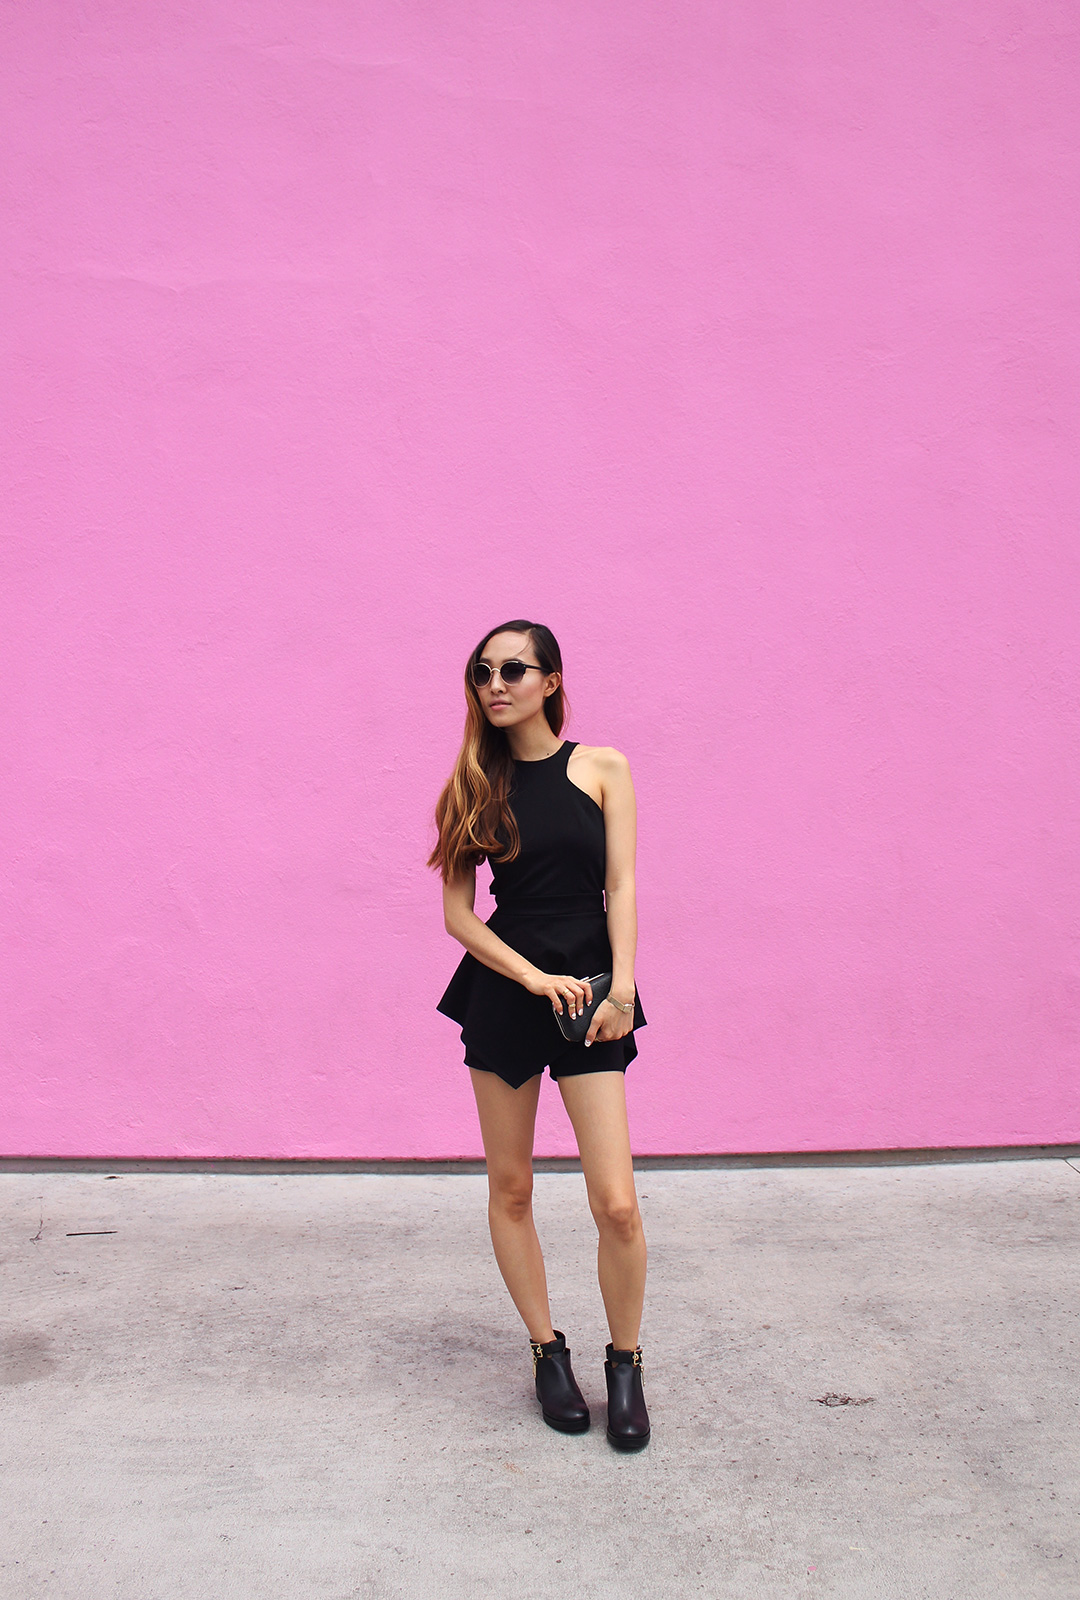 At the pink Paul Smith store wearing a r  omper by Nasty Gal, b  ooties by Zara, and s  unglasses by Urban Outfitters.